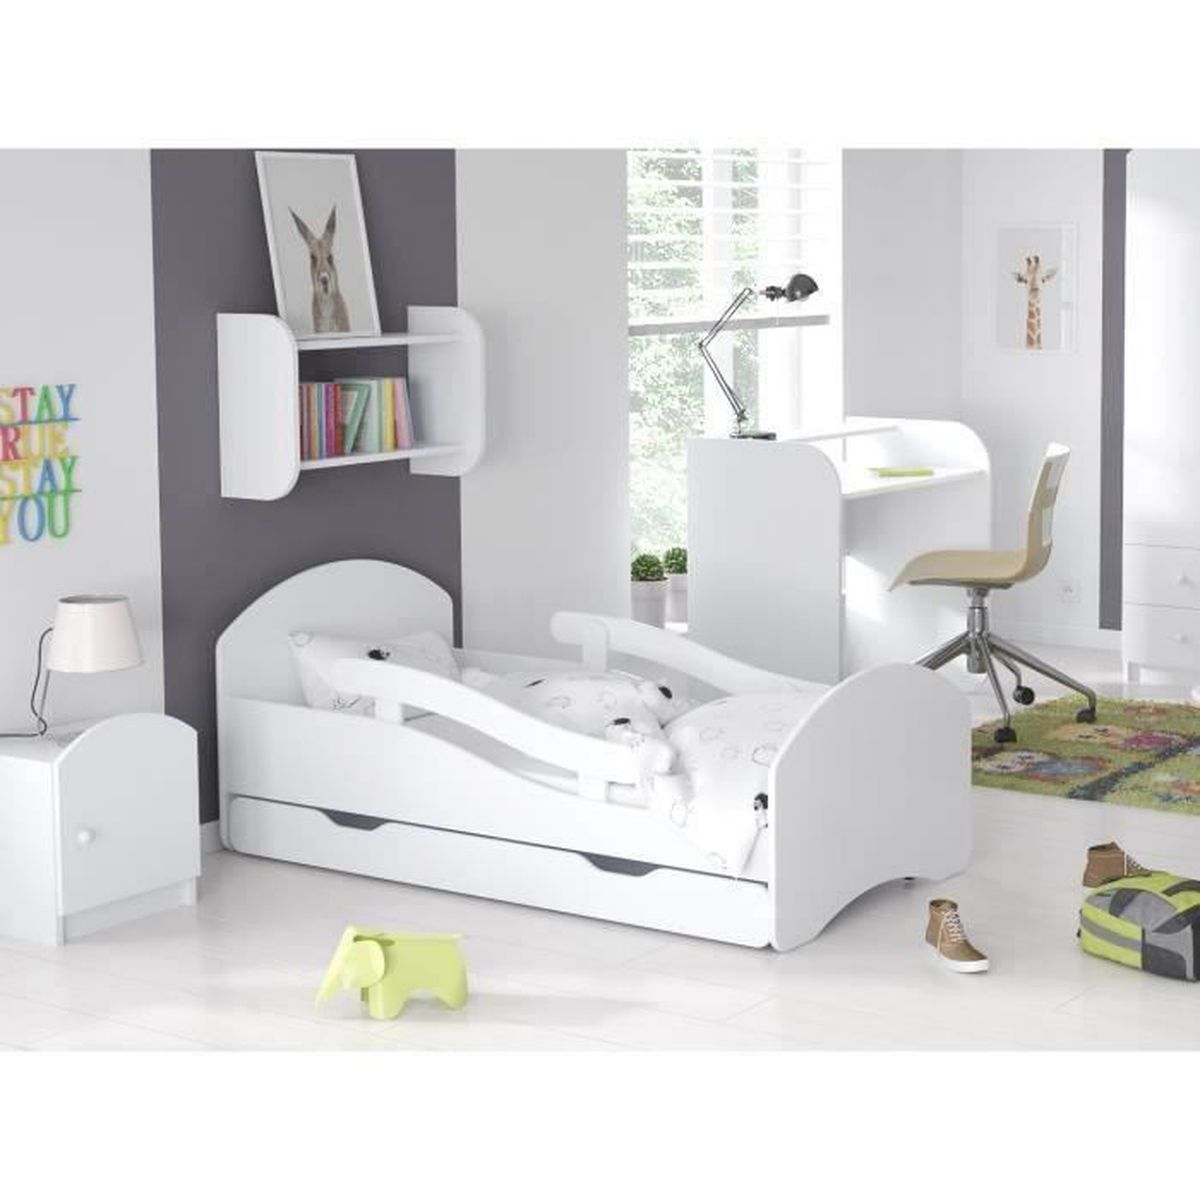 lit enfant papillon achat vente pas cher. Black Bedroom Furniture Sets. Home Design Ideas